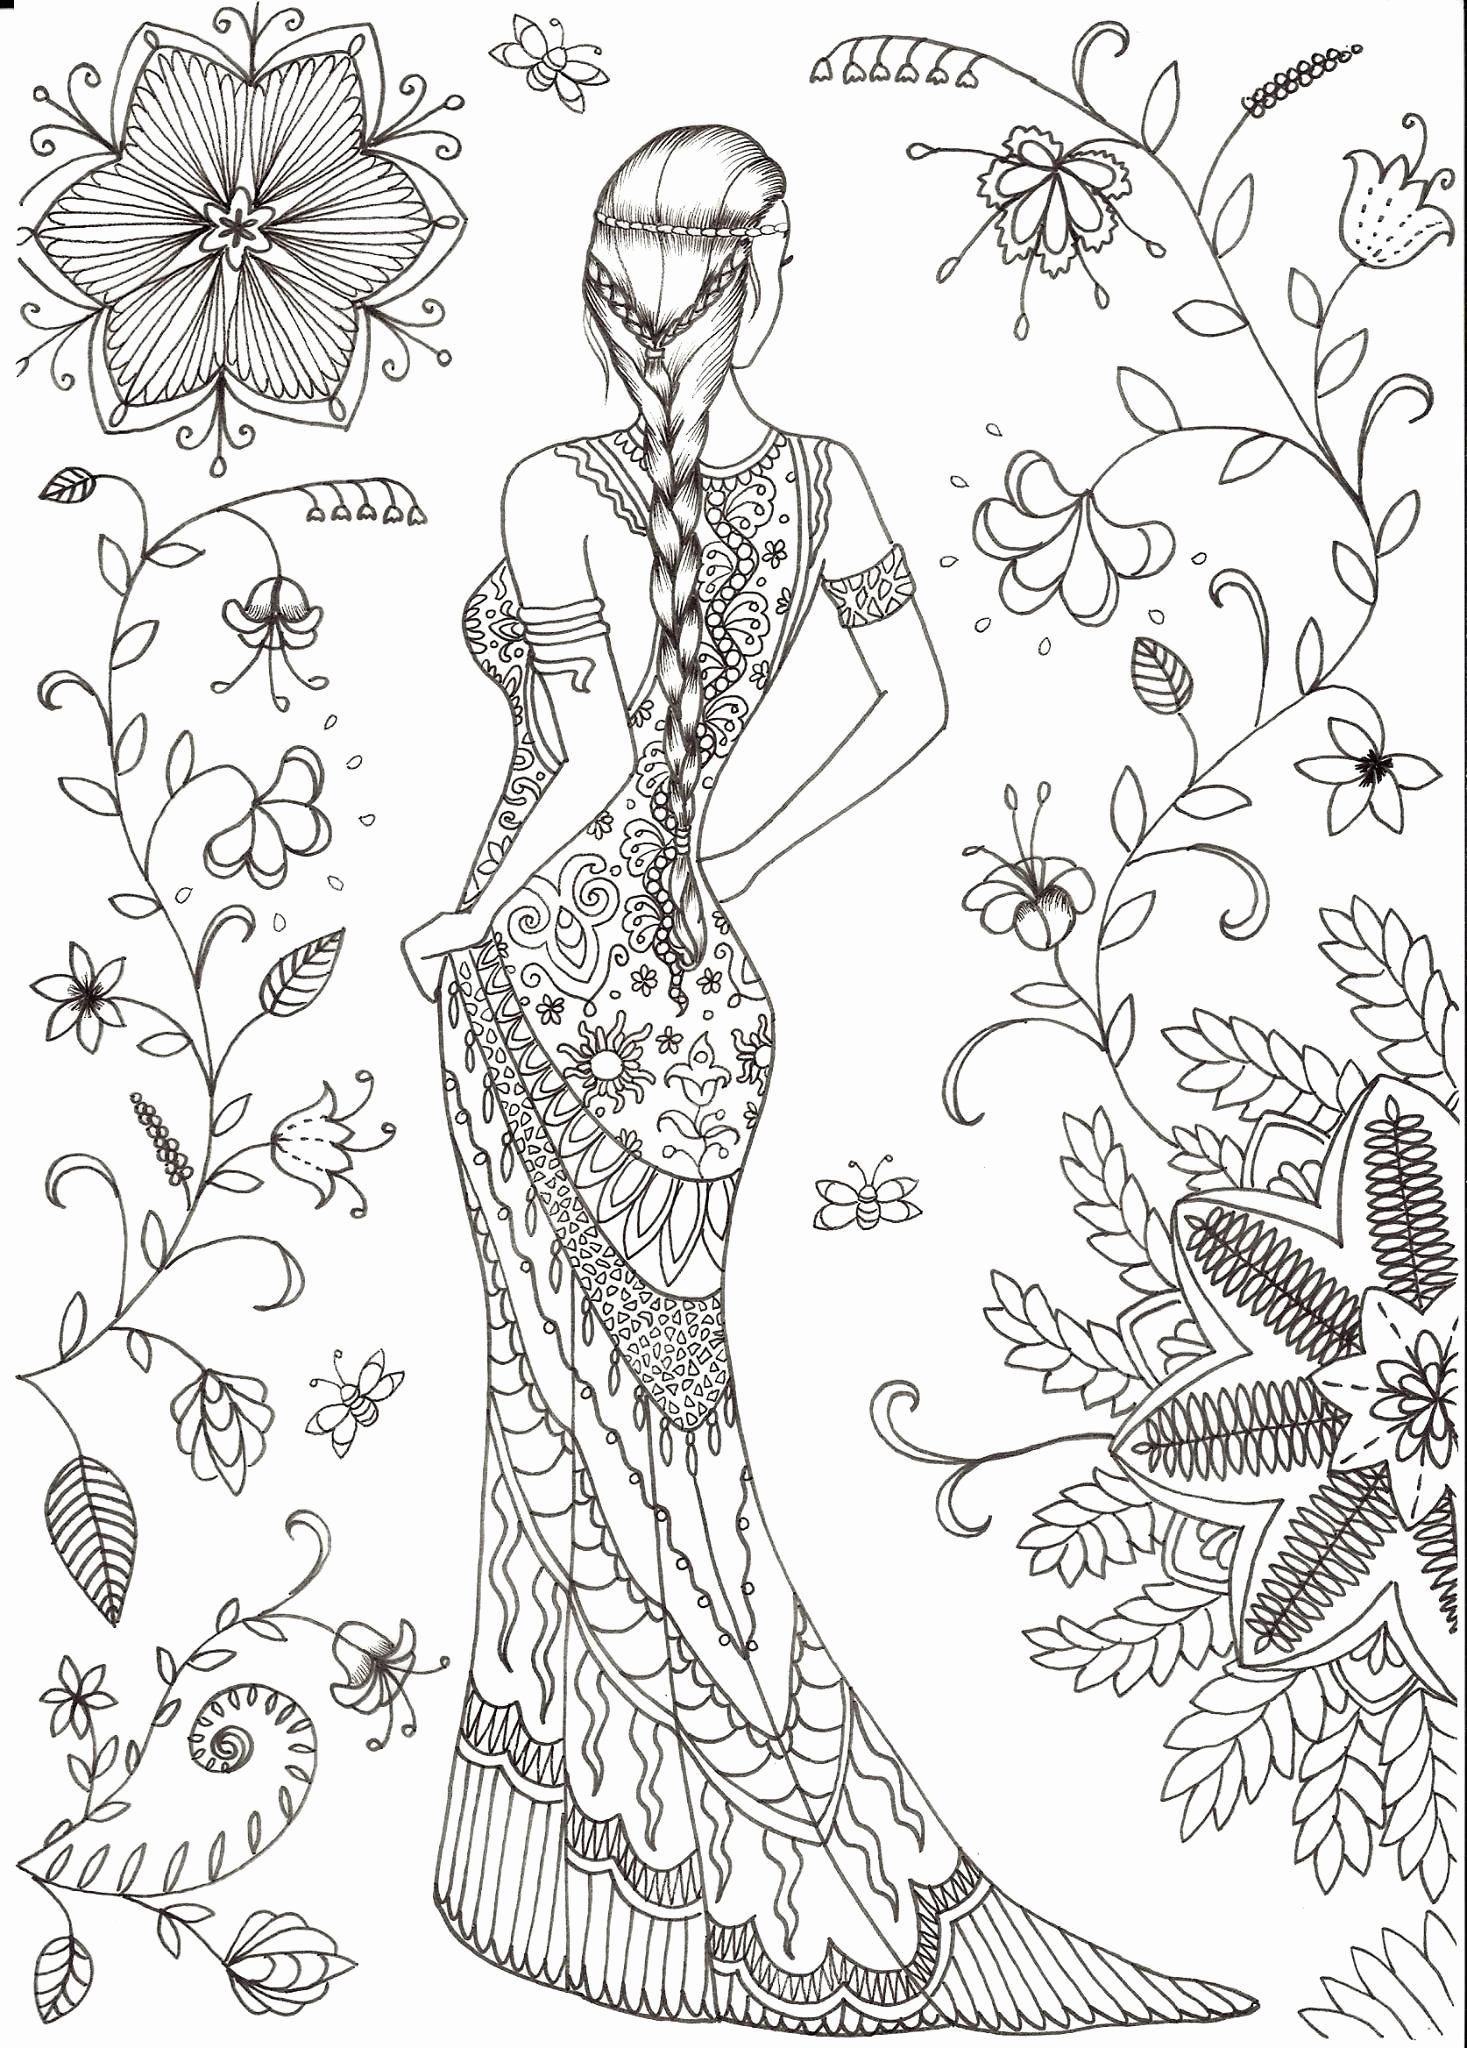 Free Online Coloring Games For Adults Tips